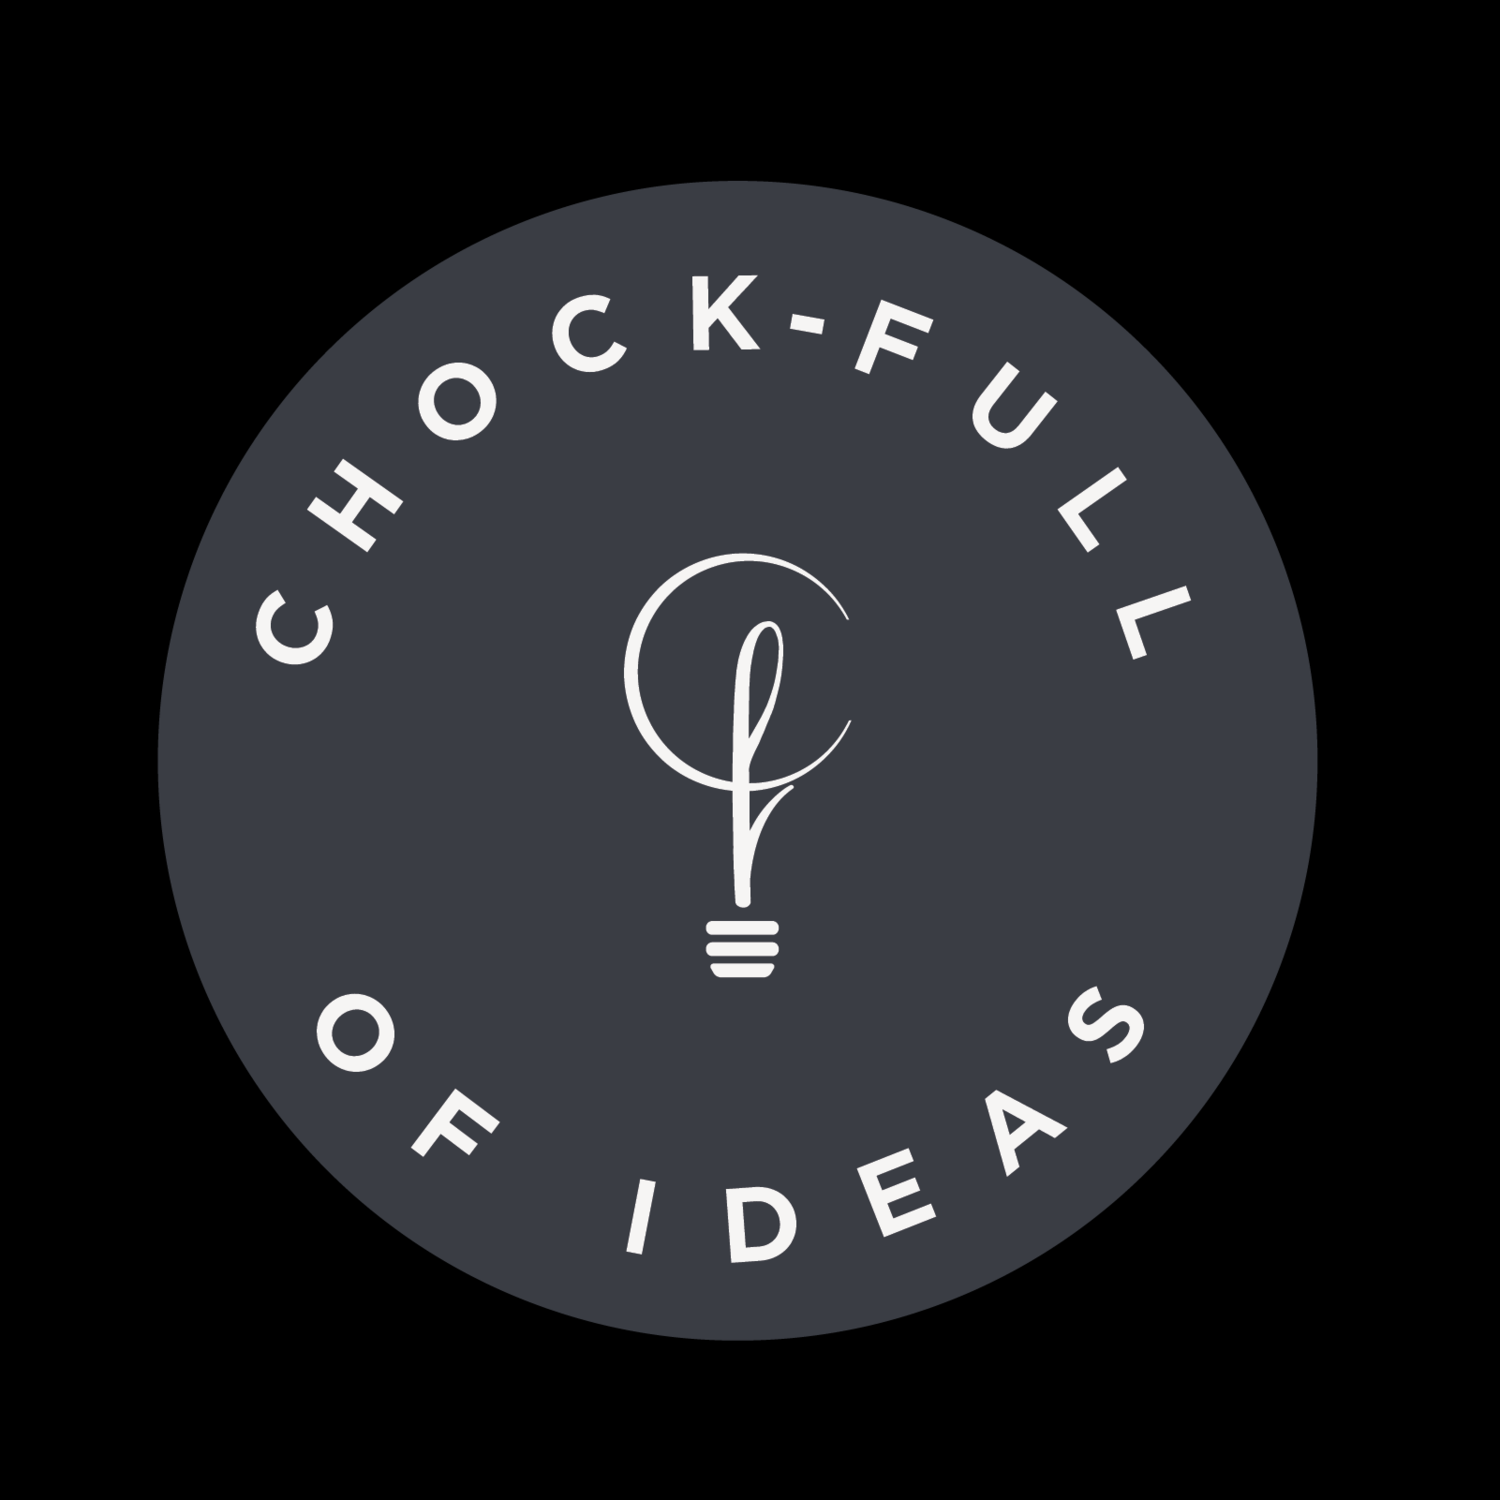 Chock-full of Ideas